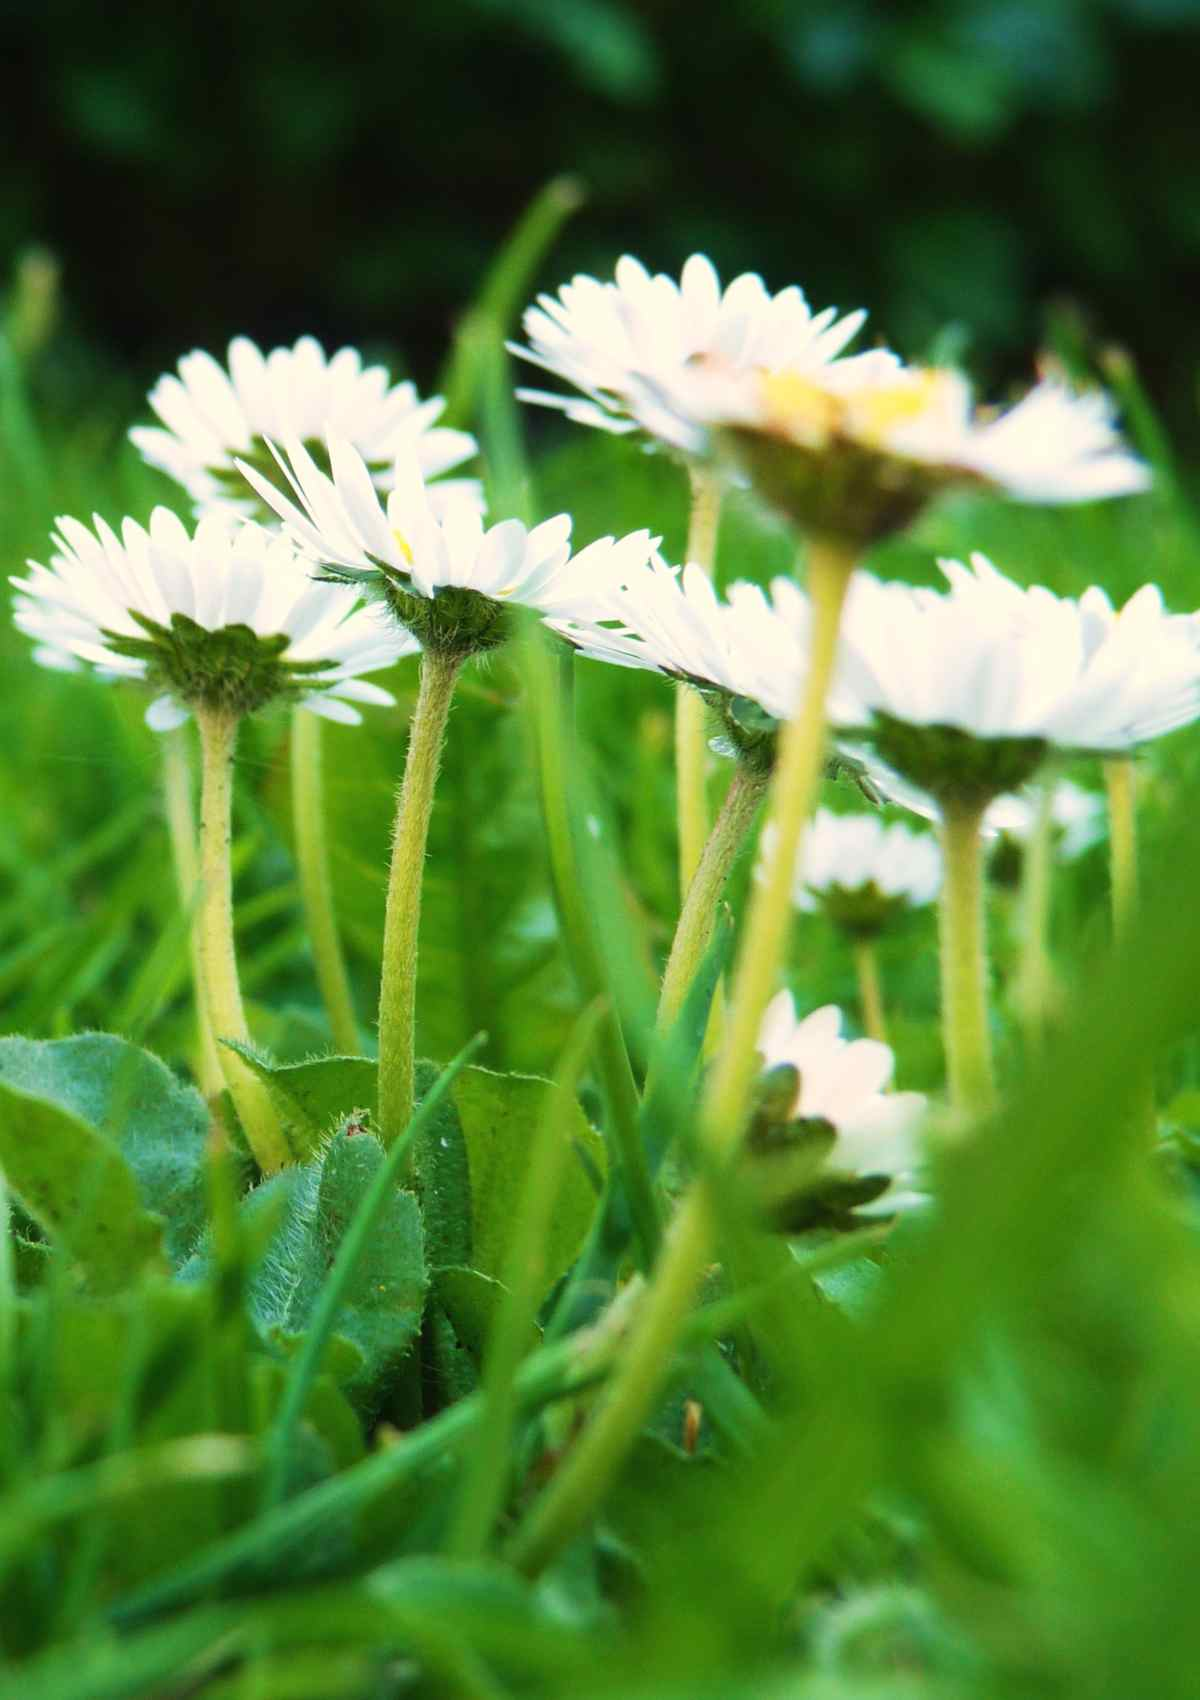 Cute lawn daisies from below